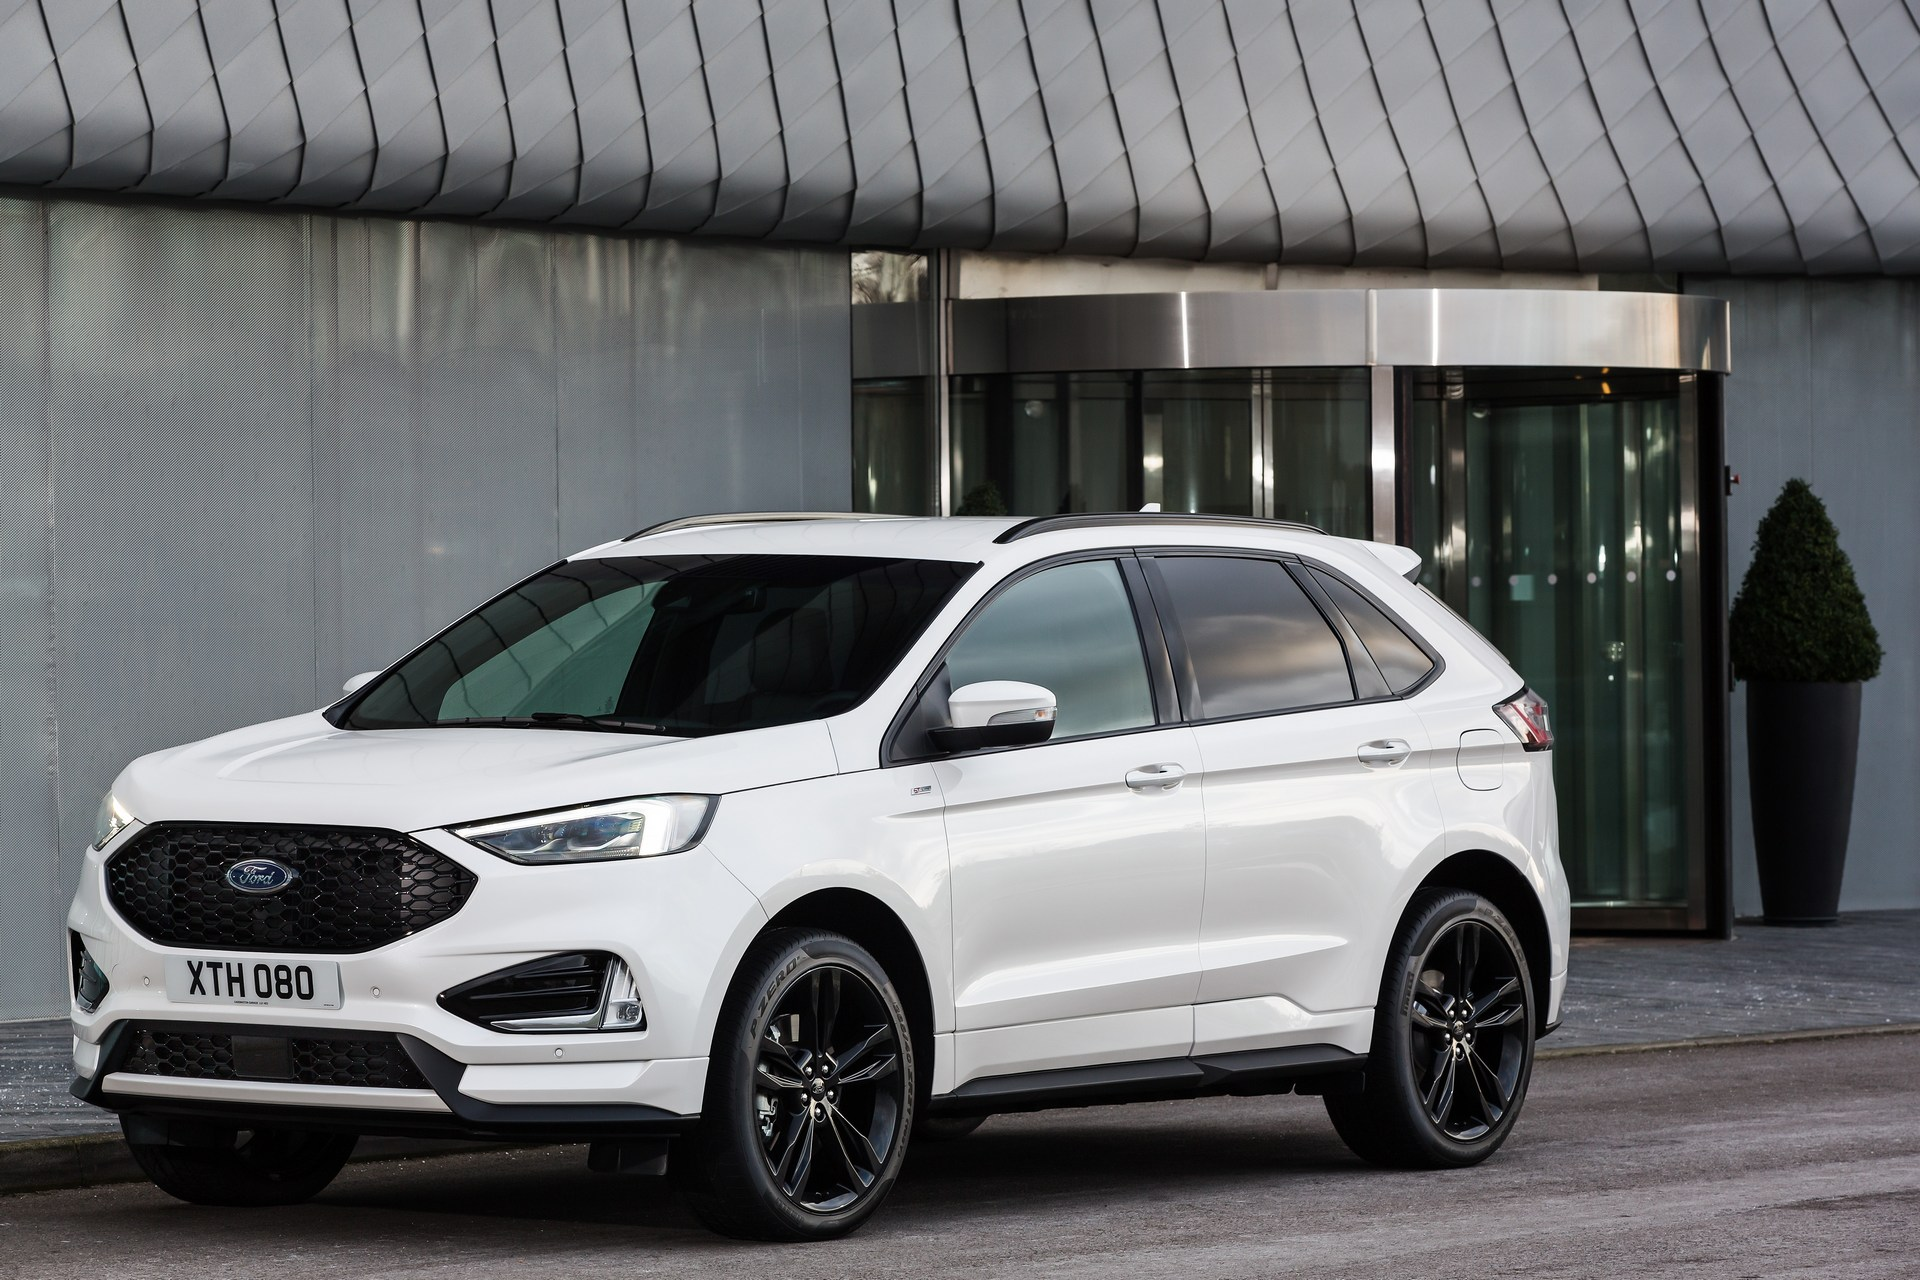 Ford Edge facelift 2018 Euro-Spec (8)